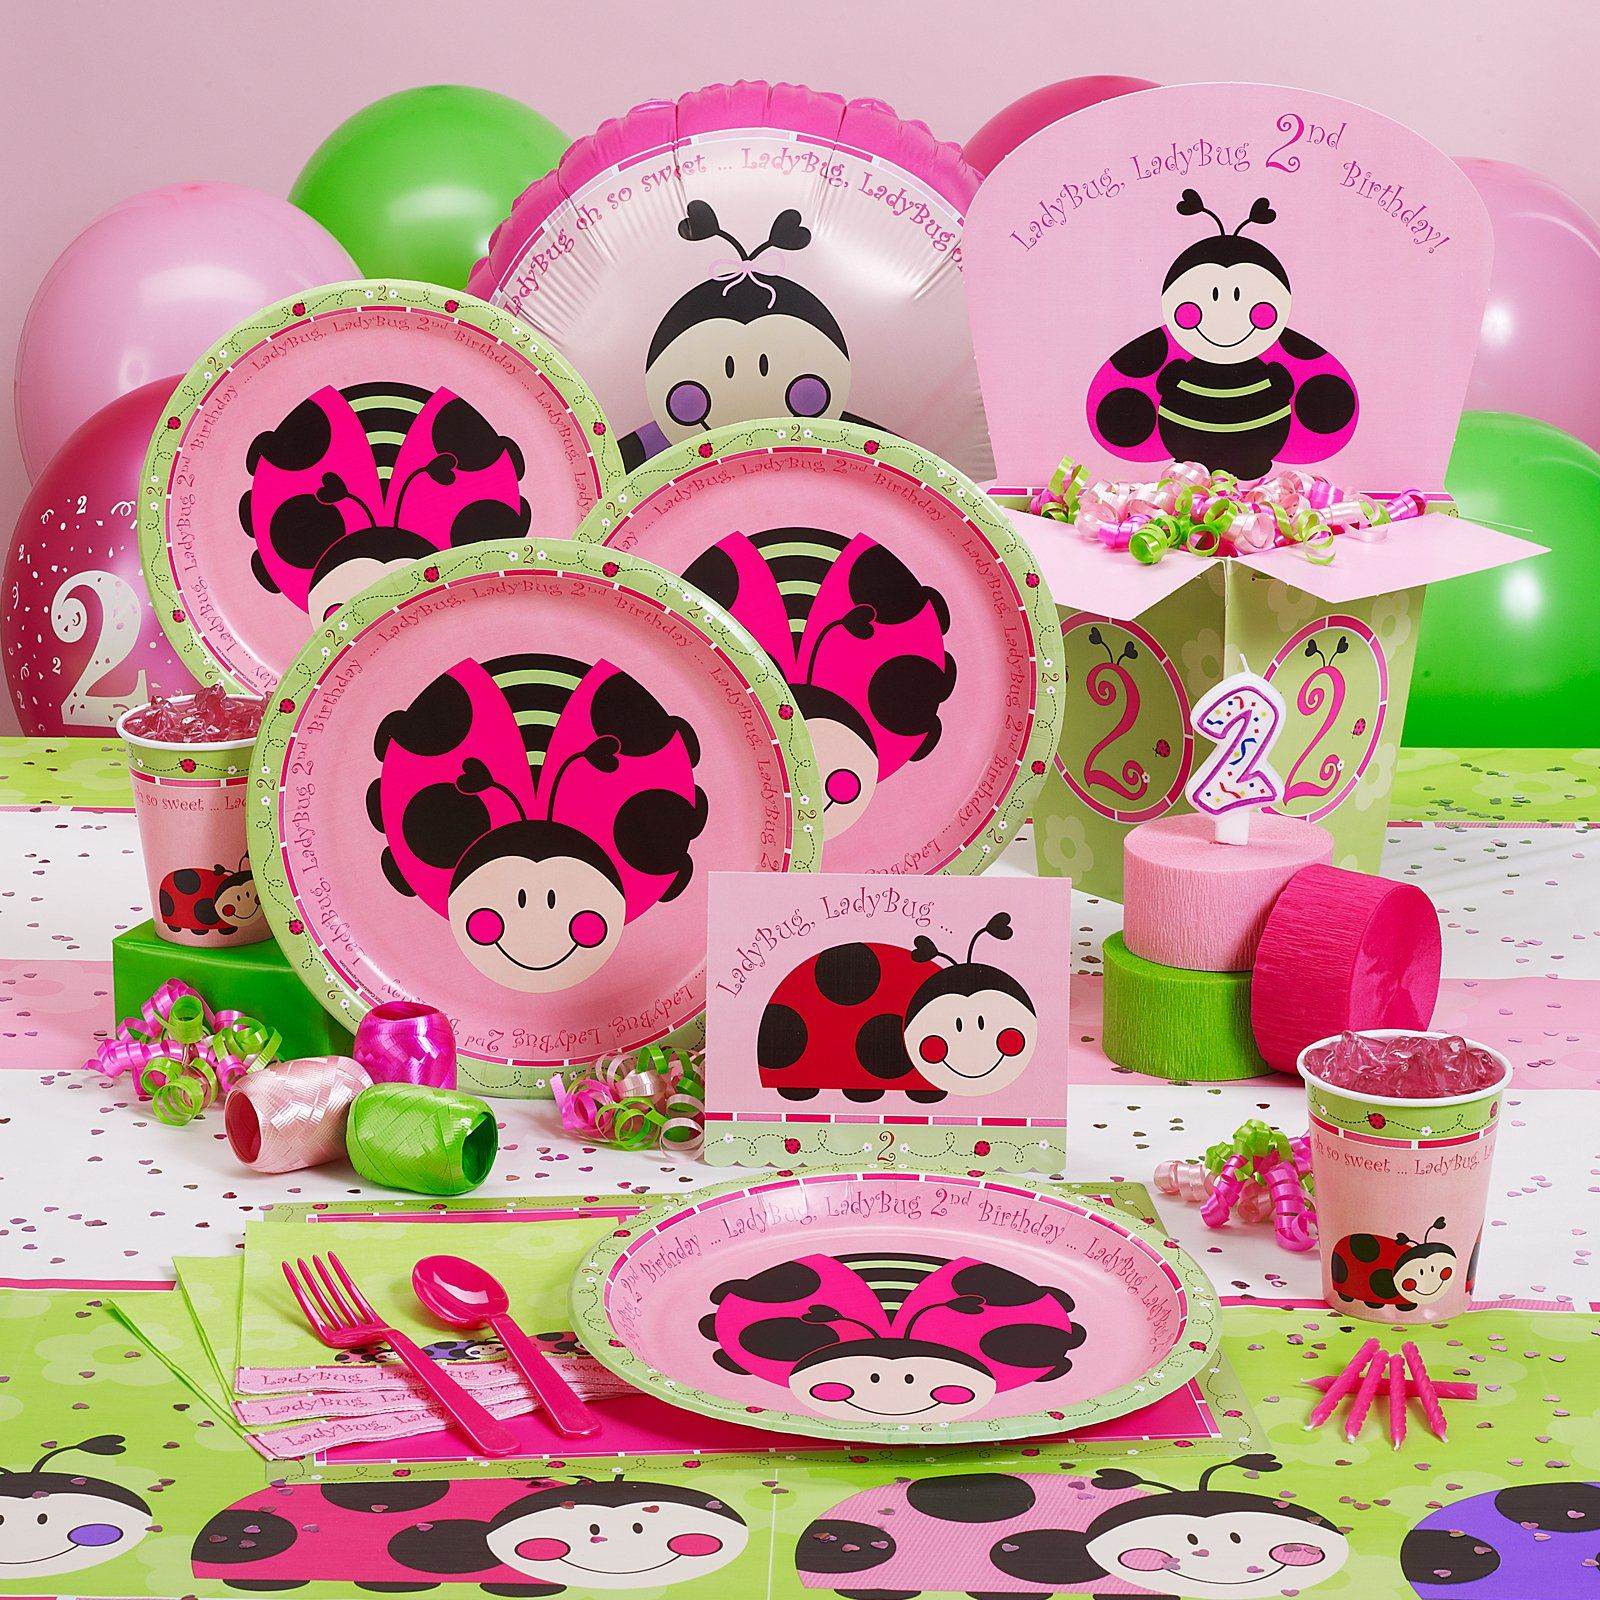 Ladybugs: Oh So Sweet 2nd Birthday Party Supplies.